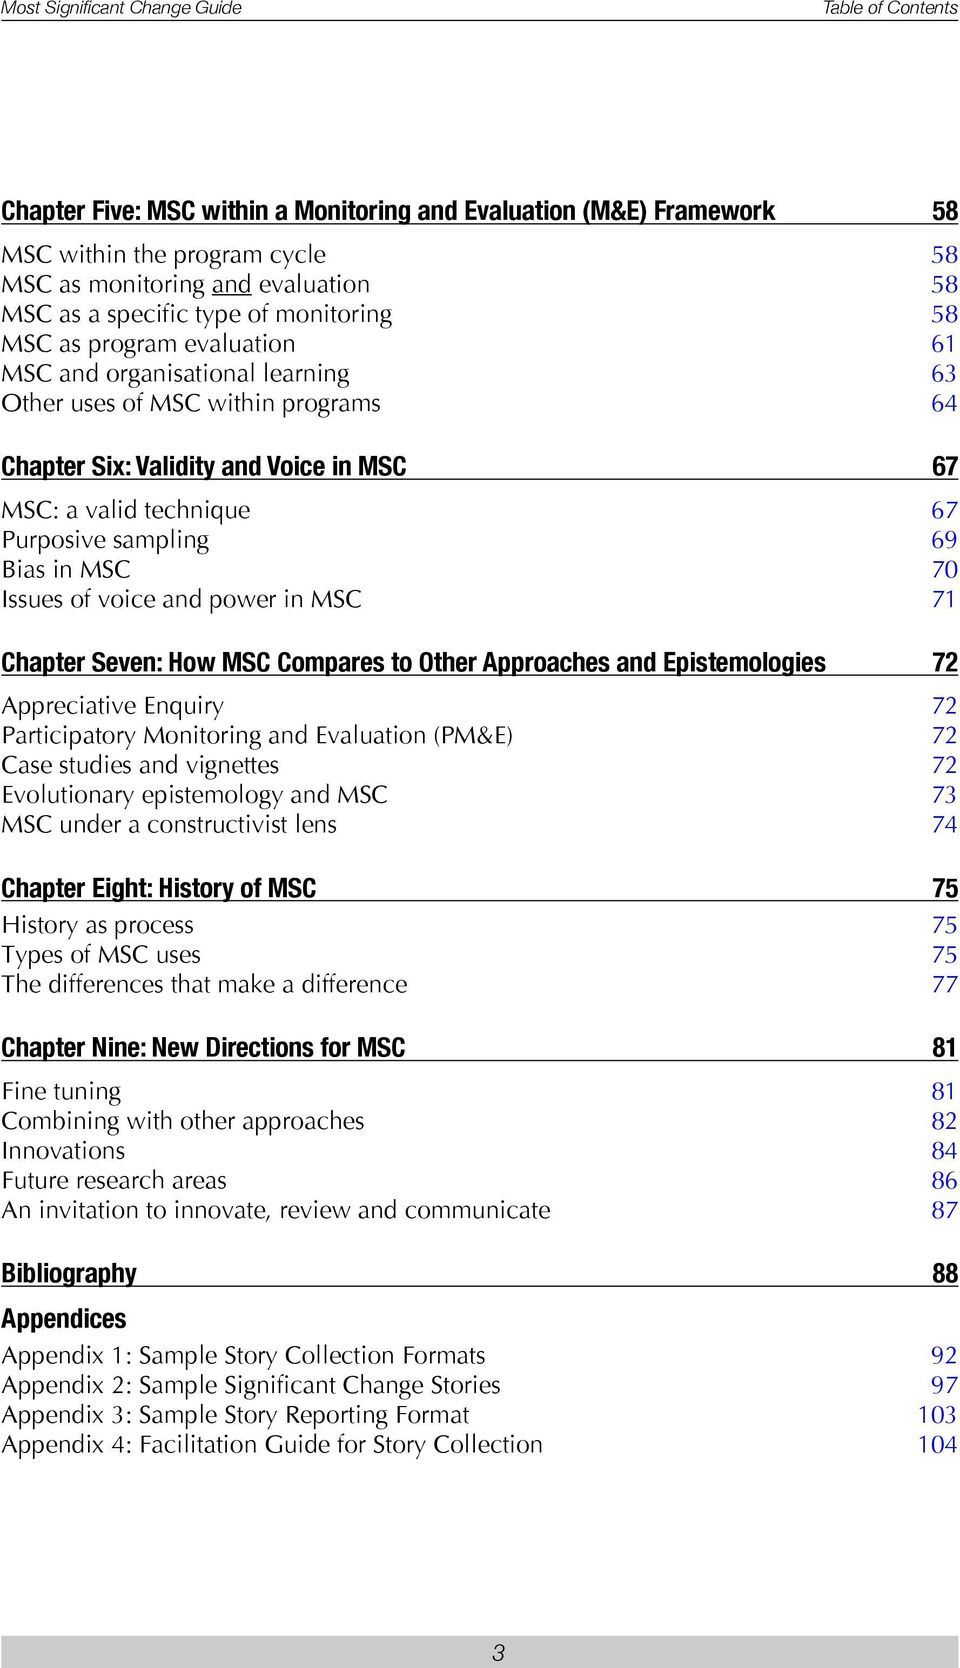 MSC 70 Issues of voice and power in MSC 71 Chapter Seven: How MSC Compares to Other Approaches and Epistemologies 72 Appreciative Enquiry 72 Participatory Monitoring and Evaluation (PM&E) 72 Case